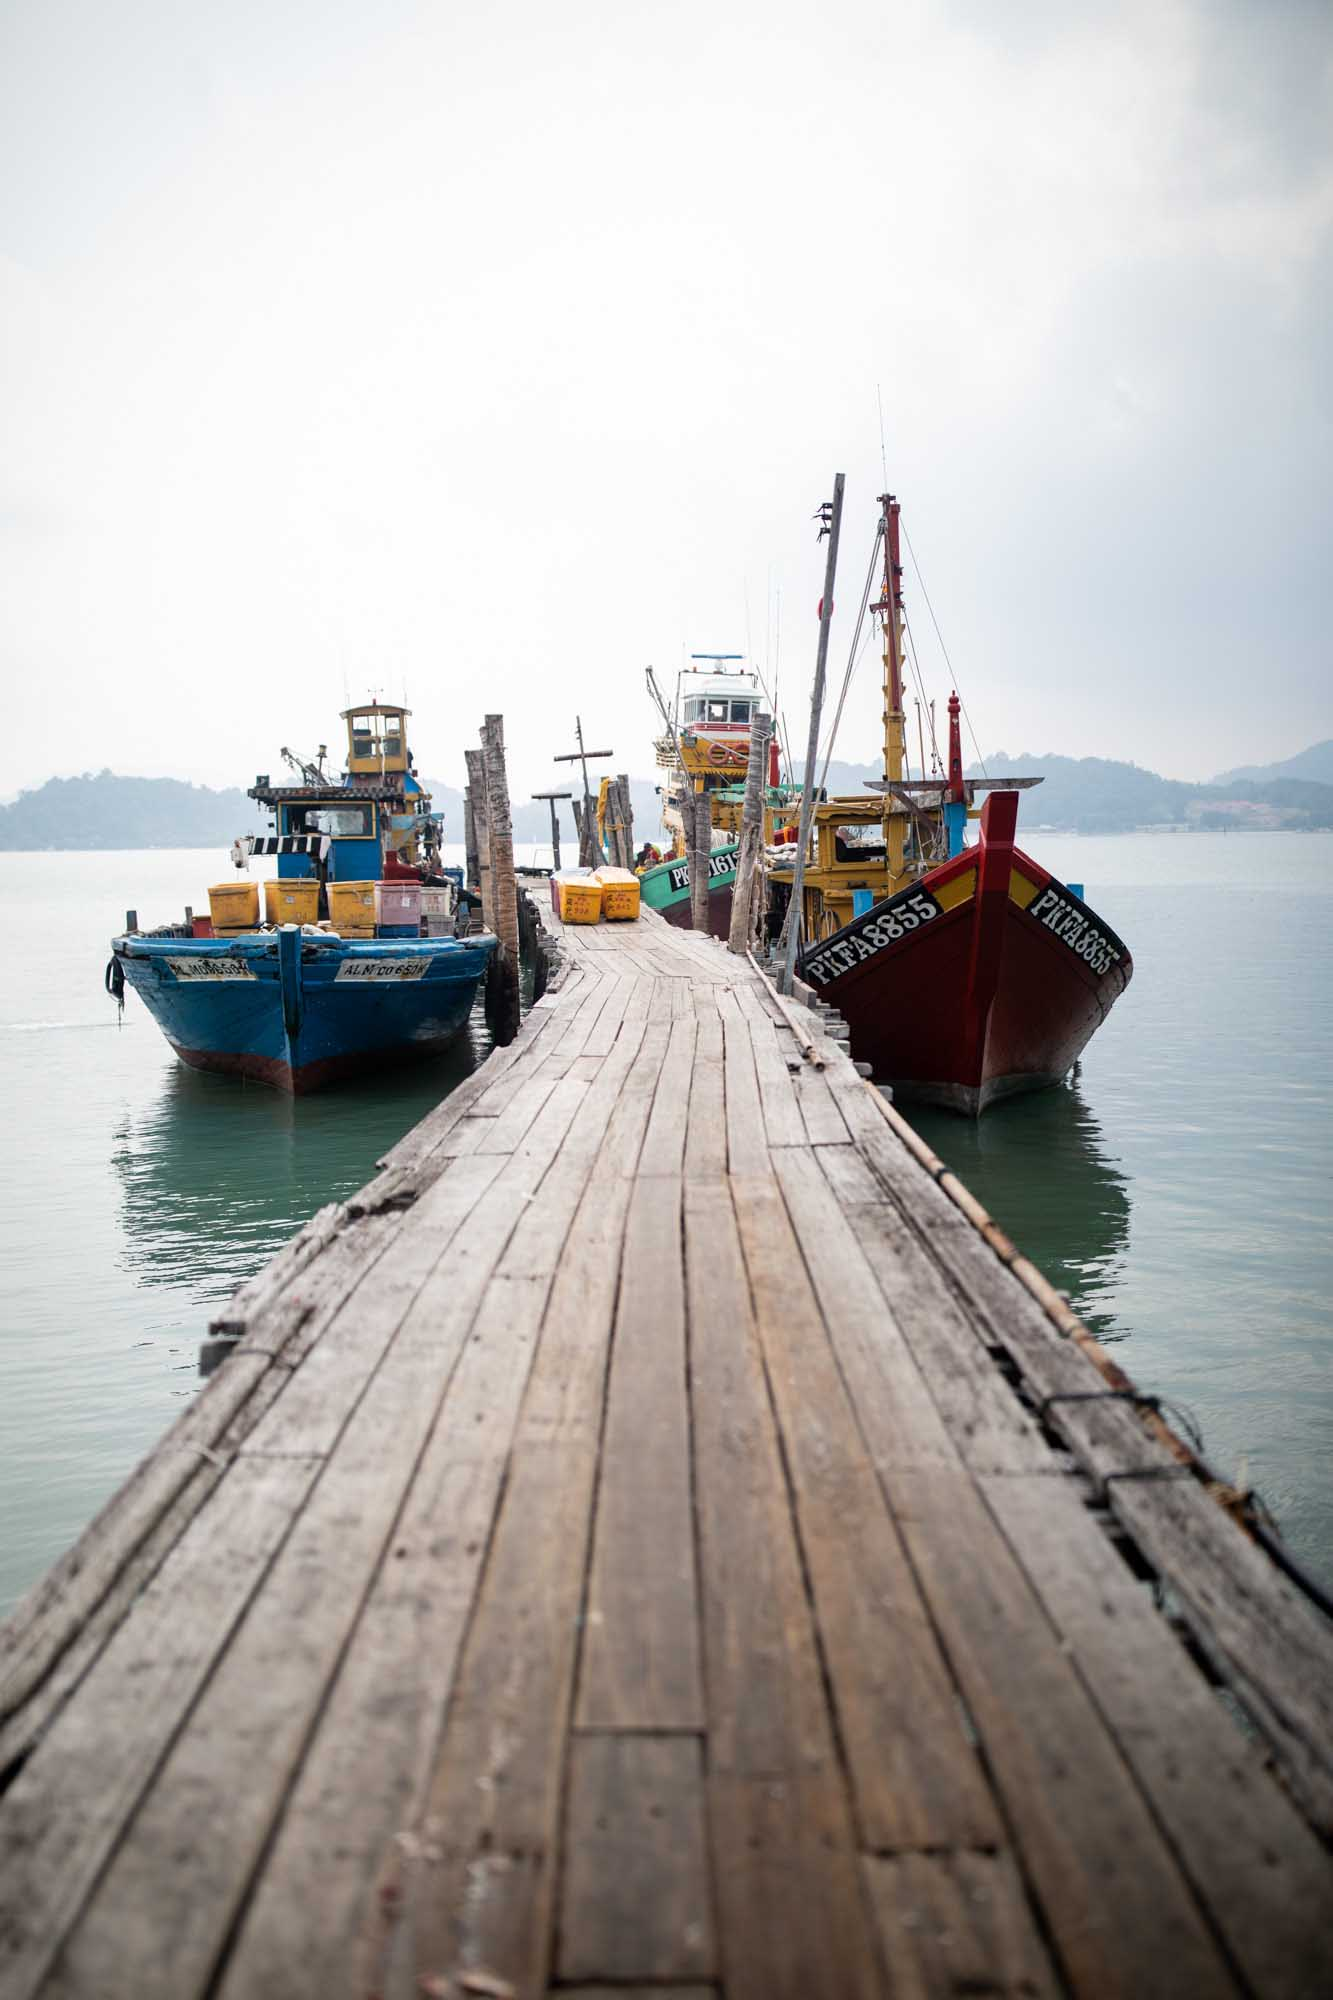 Fishing ships docked on wooden walkway in Pulau Pangkor, Malaysia. Travel Photography